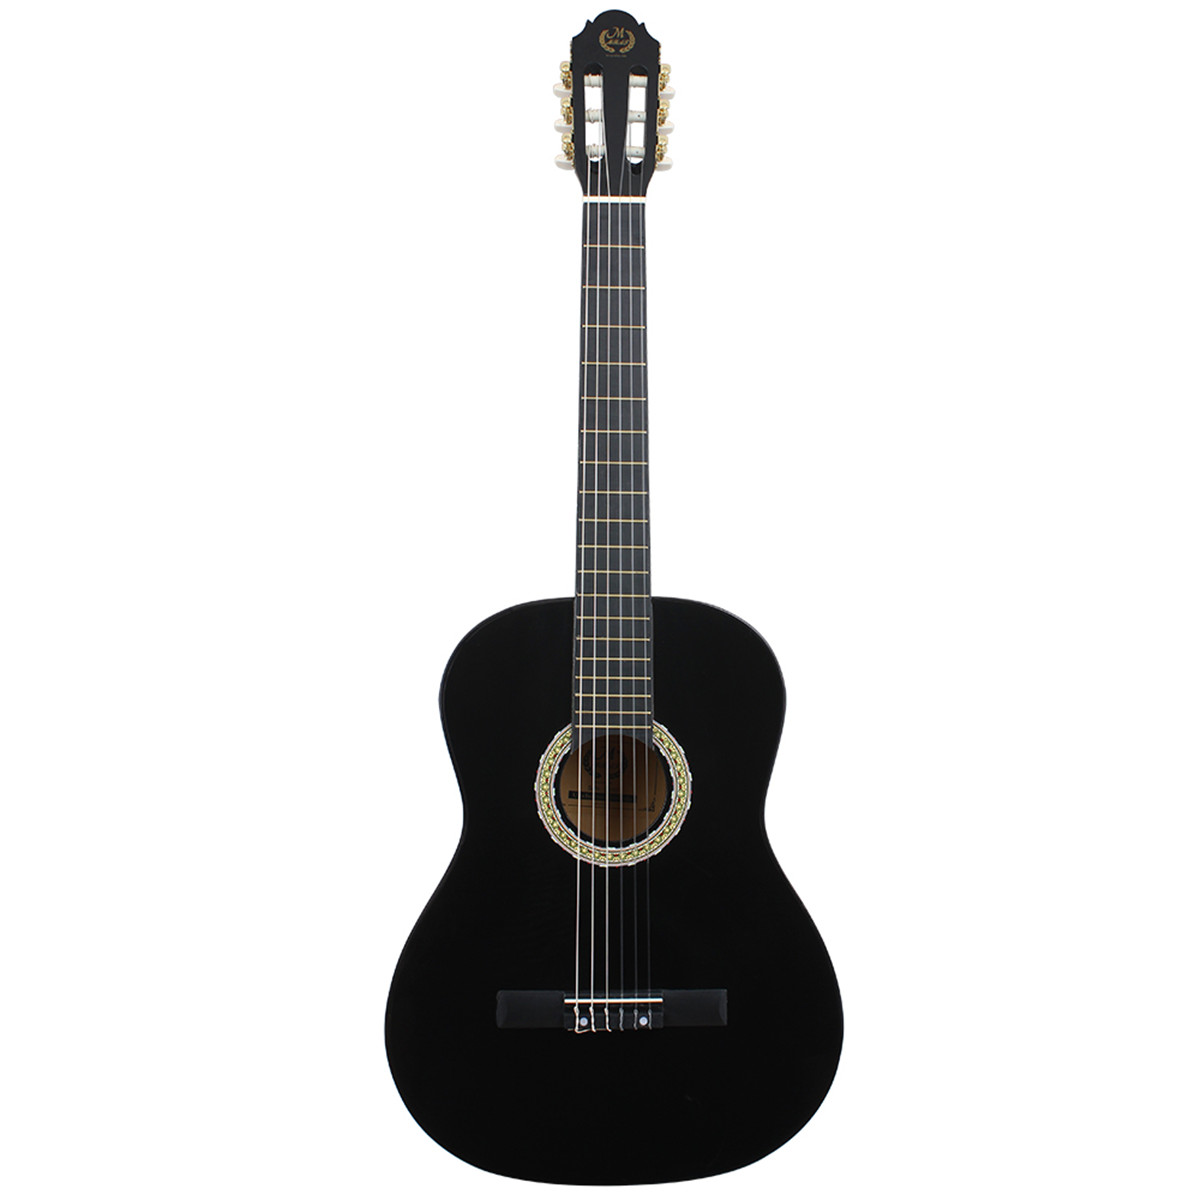 39 Inch Wood Modern Classical Guitar Beginner Practice Entry Classical Acoustic Guitar Musical Instrument Gift39 Inch Wood Modern Classical Guitar Beginner Practice Entry Classical Acoustic Guitar Musical Instrument Gift